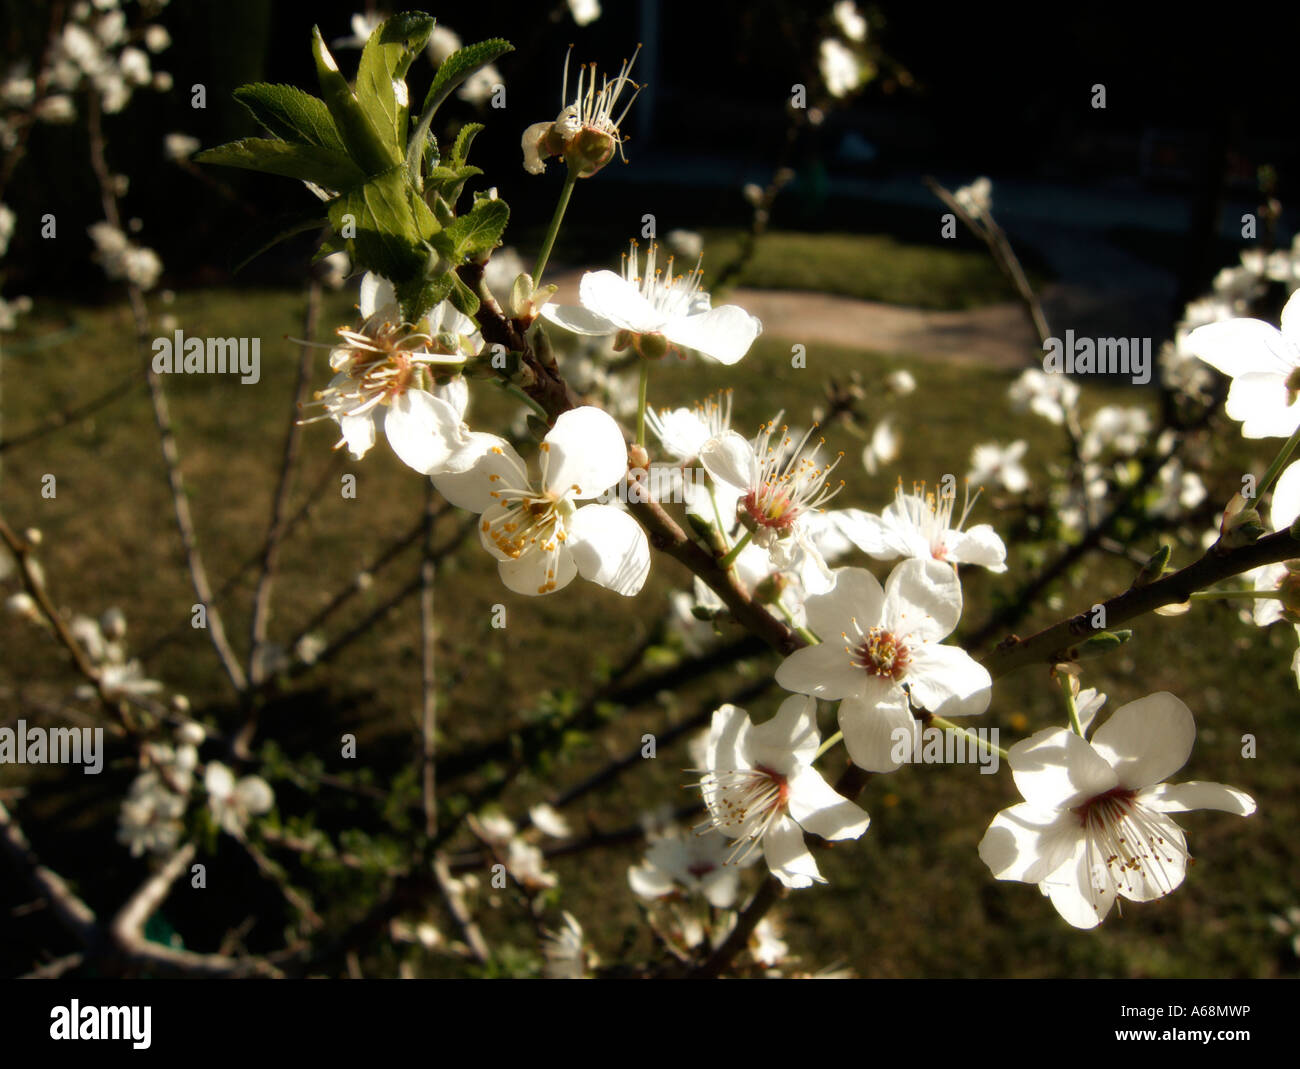 First plum blossoms of the season. Valencia. Spain. - Stock Image